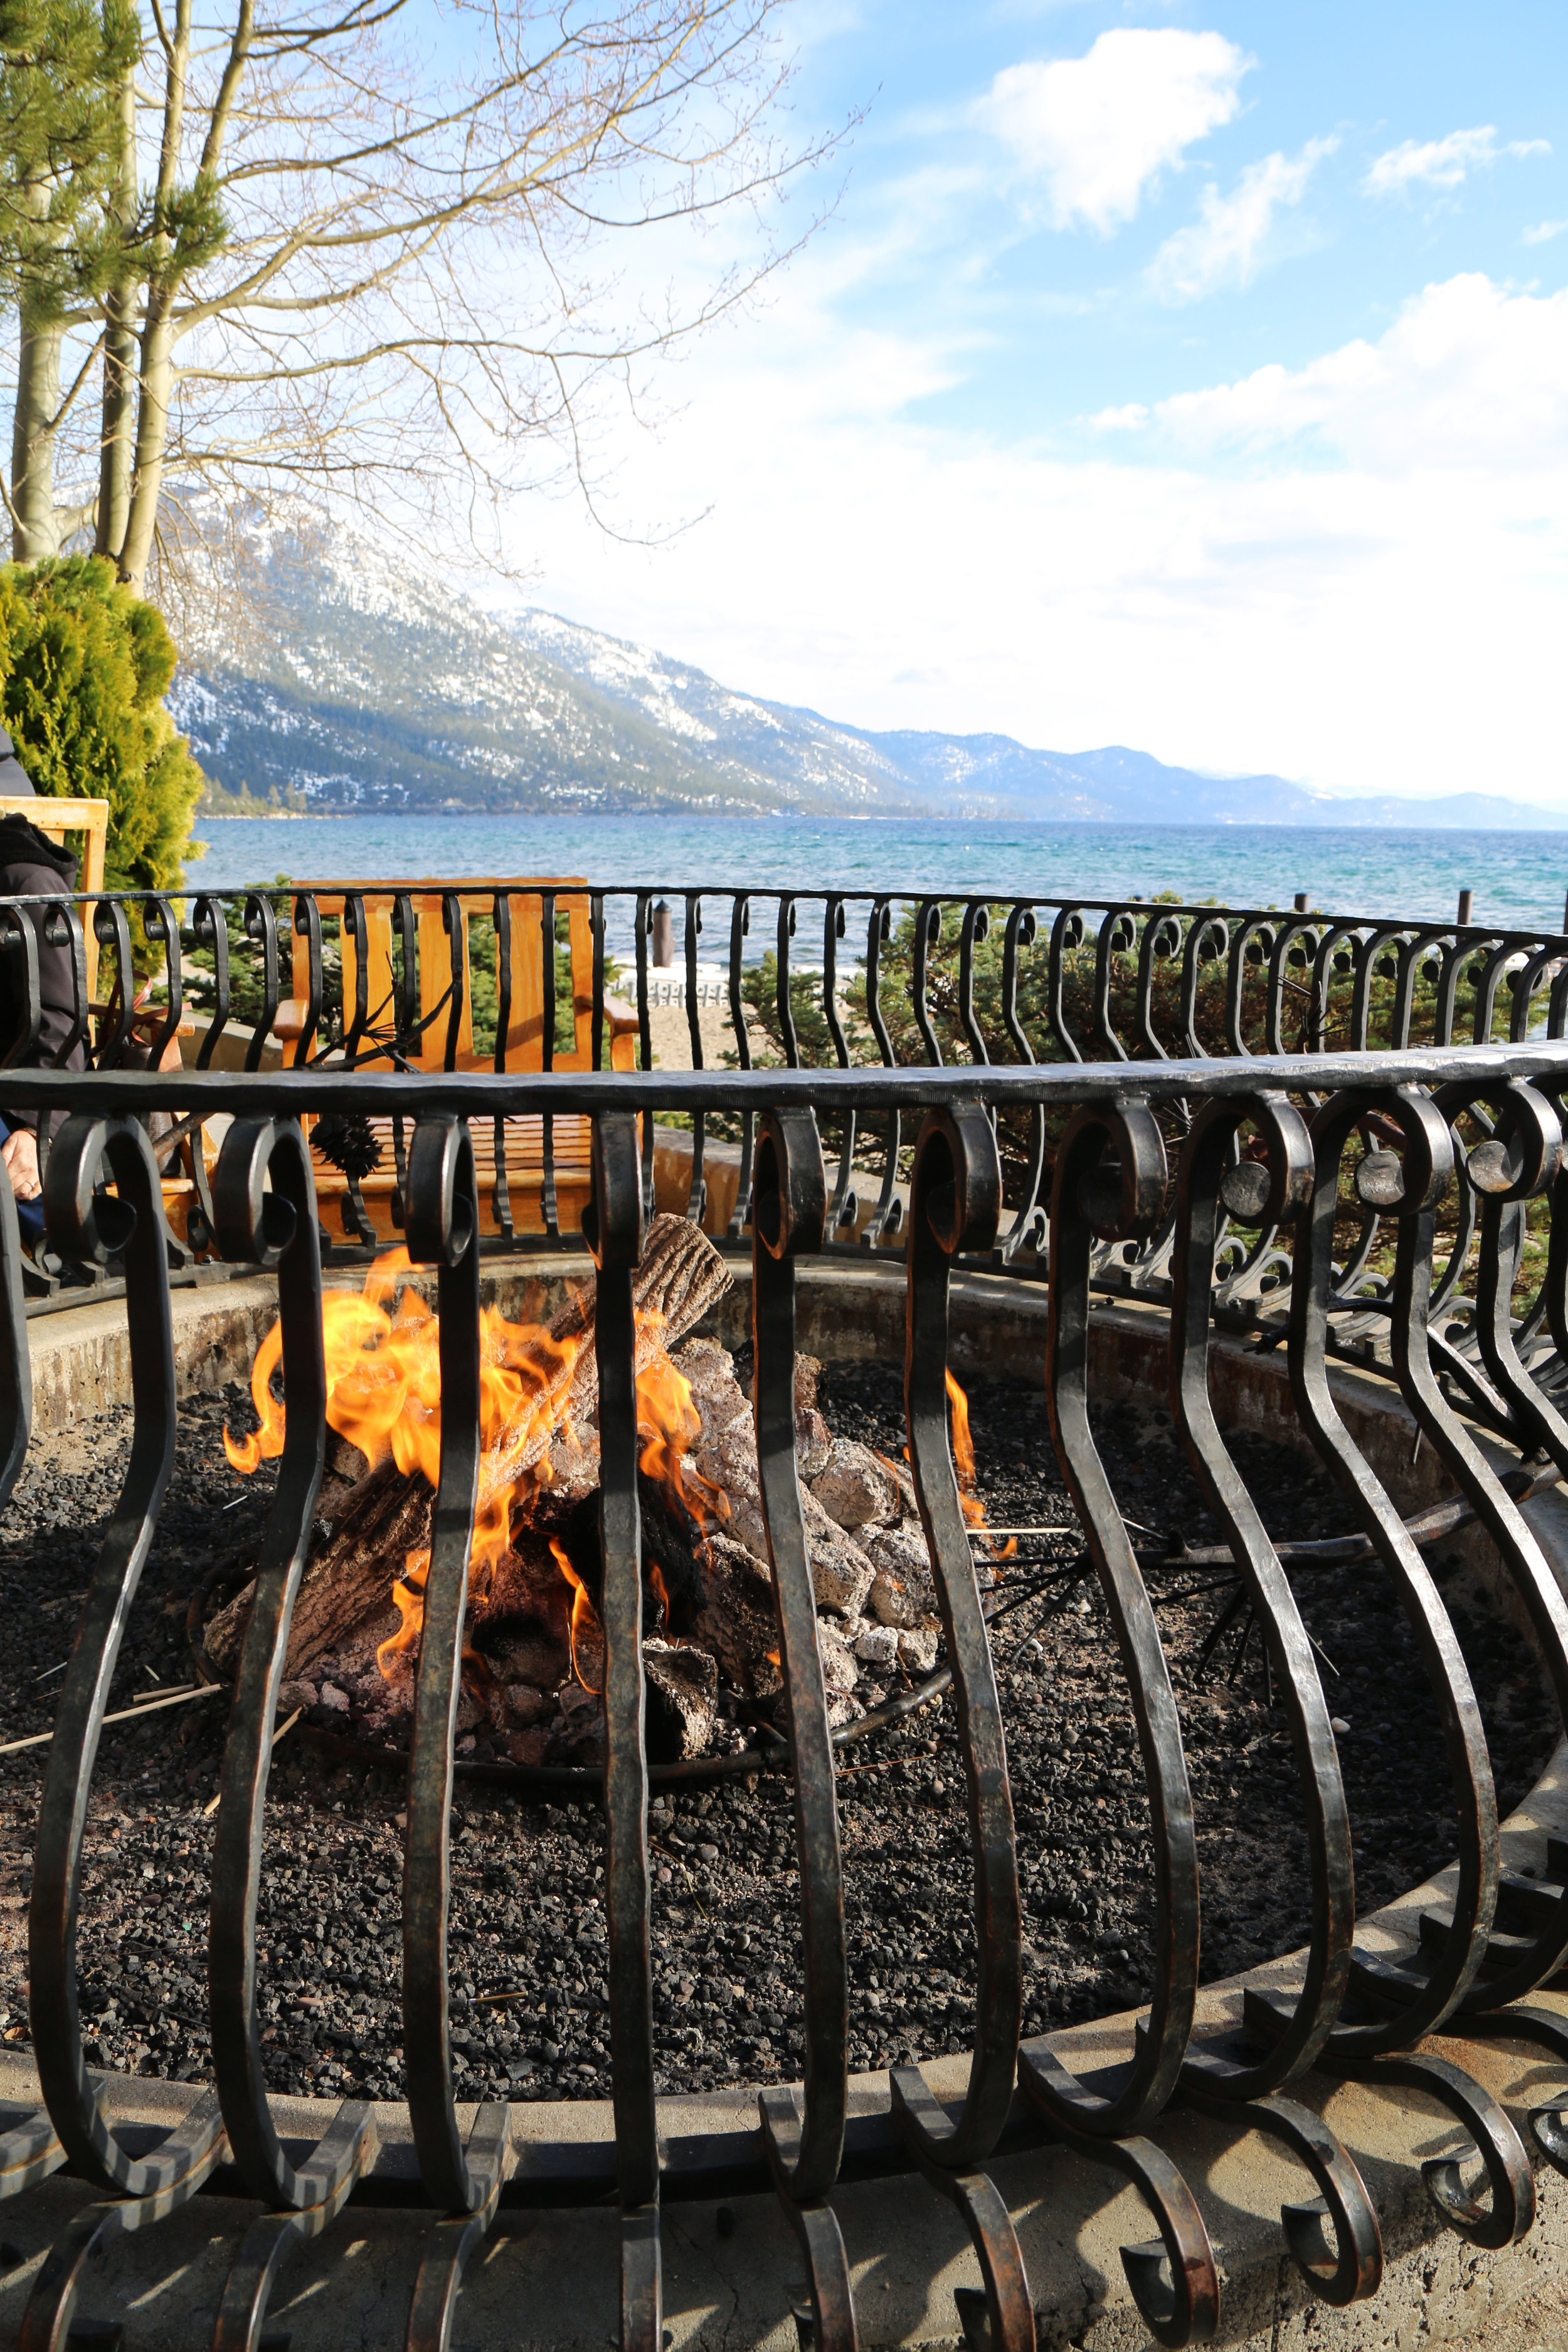 Lifestyle and travel blogger Bri Sul does Tahoe Lake near Reno, Nevada. An amazing solo trip to the Hyatt. On the beach and lake! Lone Eagle Grill